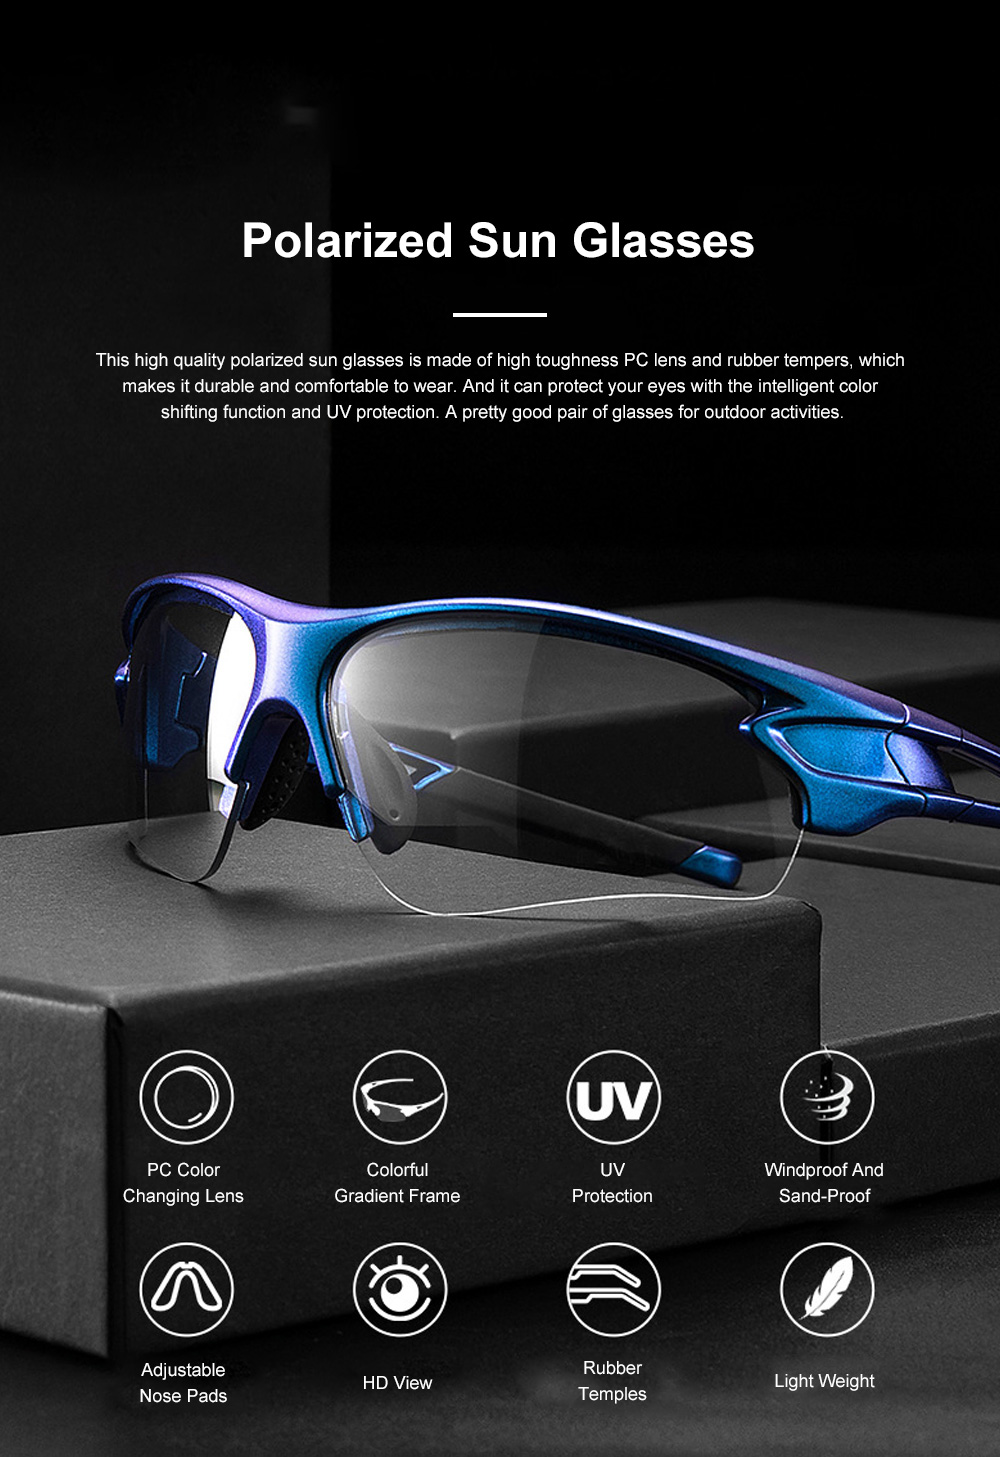 ROCKBROS Polarized Sun Glasses Intelligent Color Shifting UV Protection Glasses with High Toughness PC Lens for Outdoor Sport 0